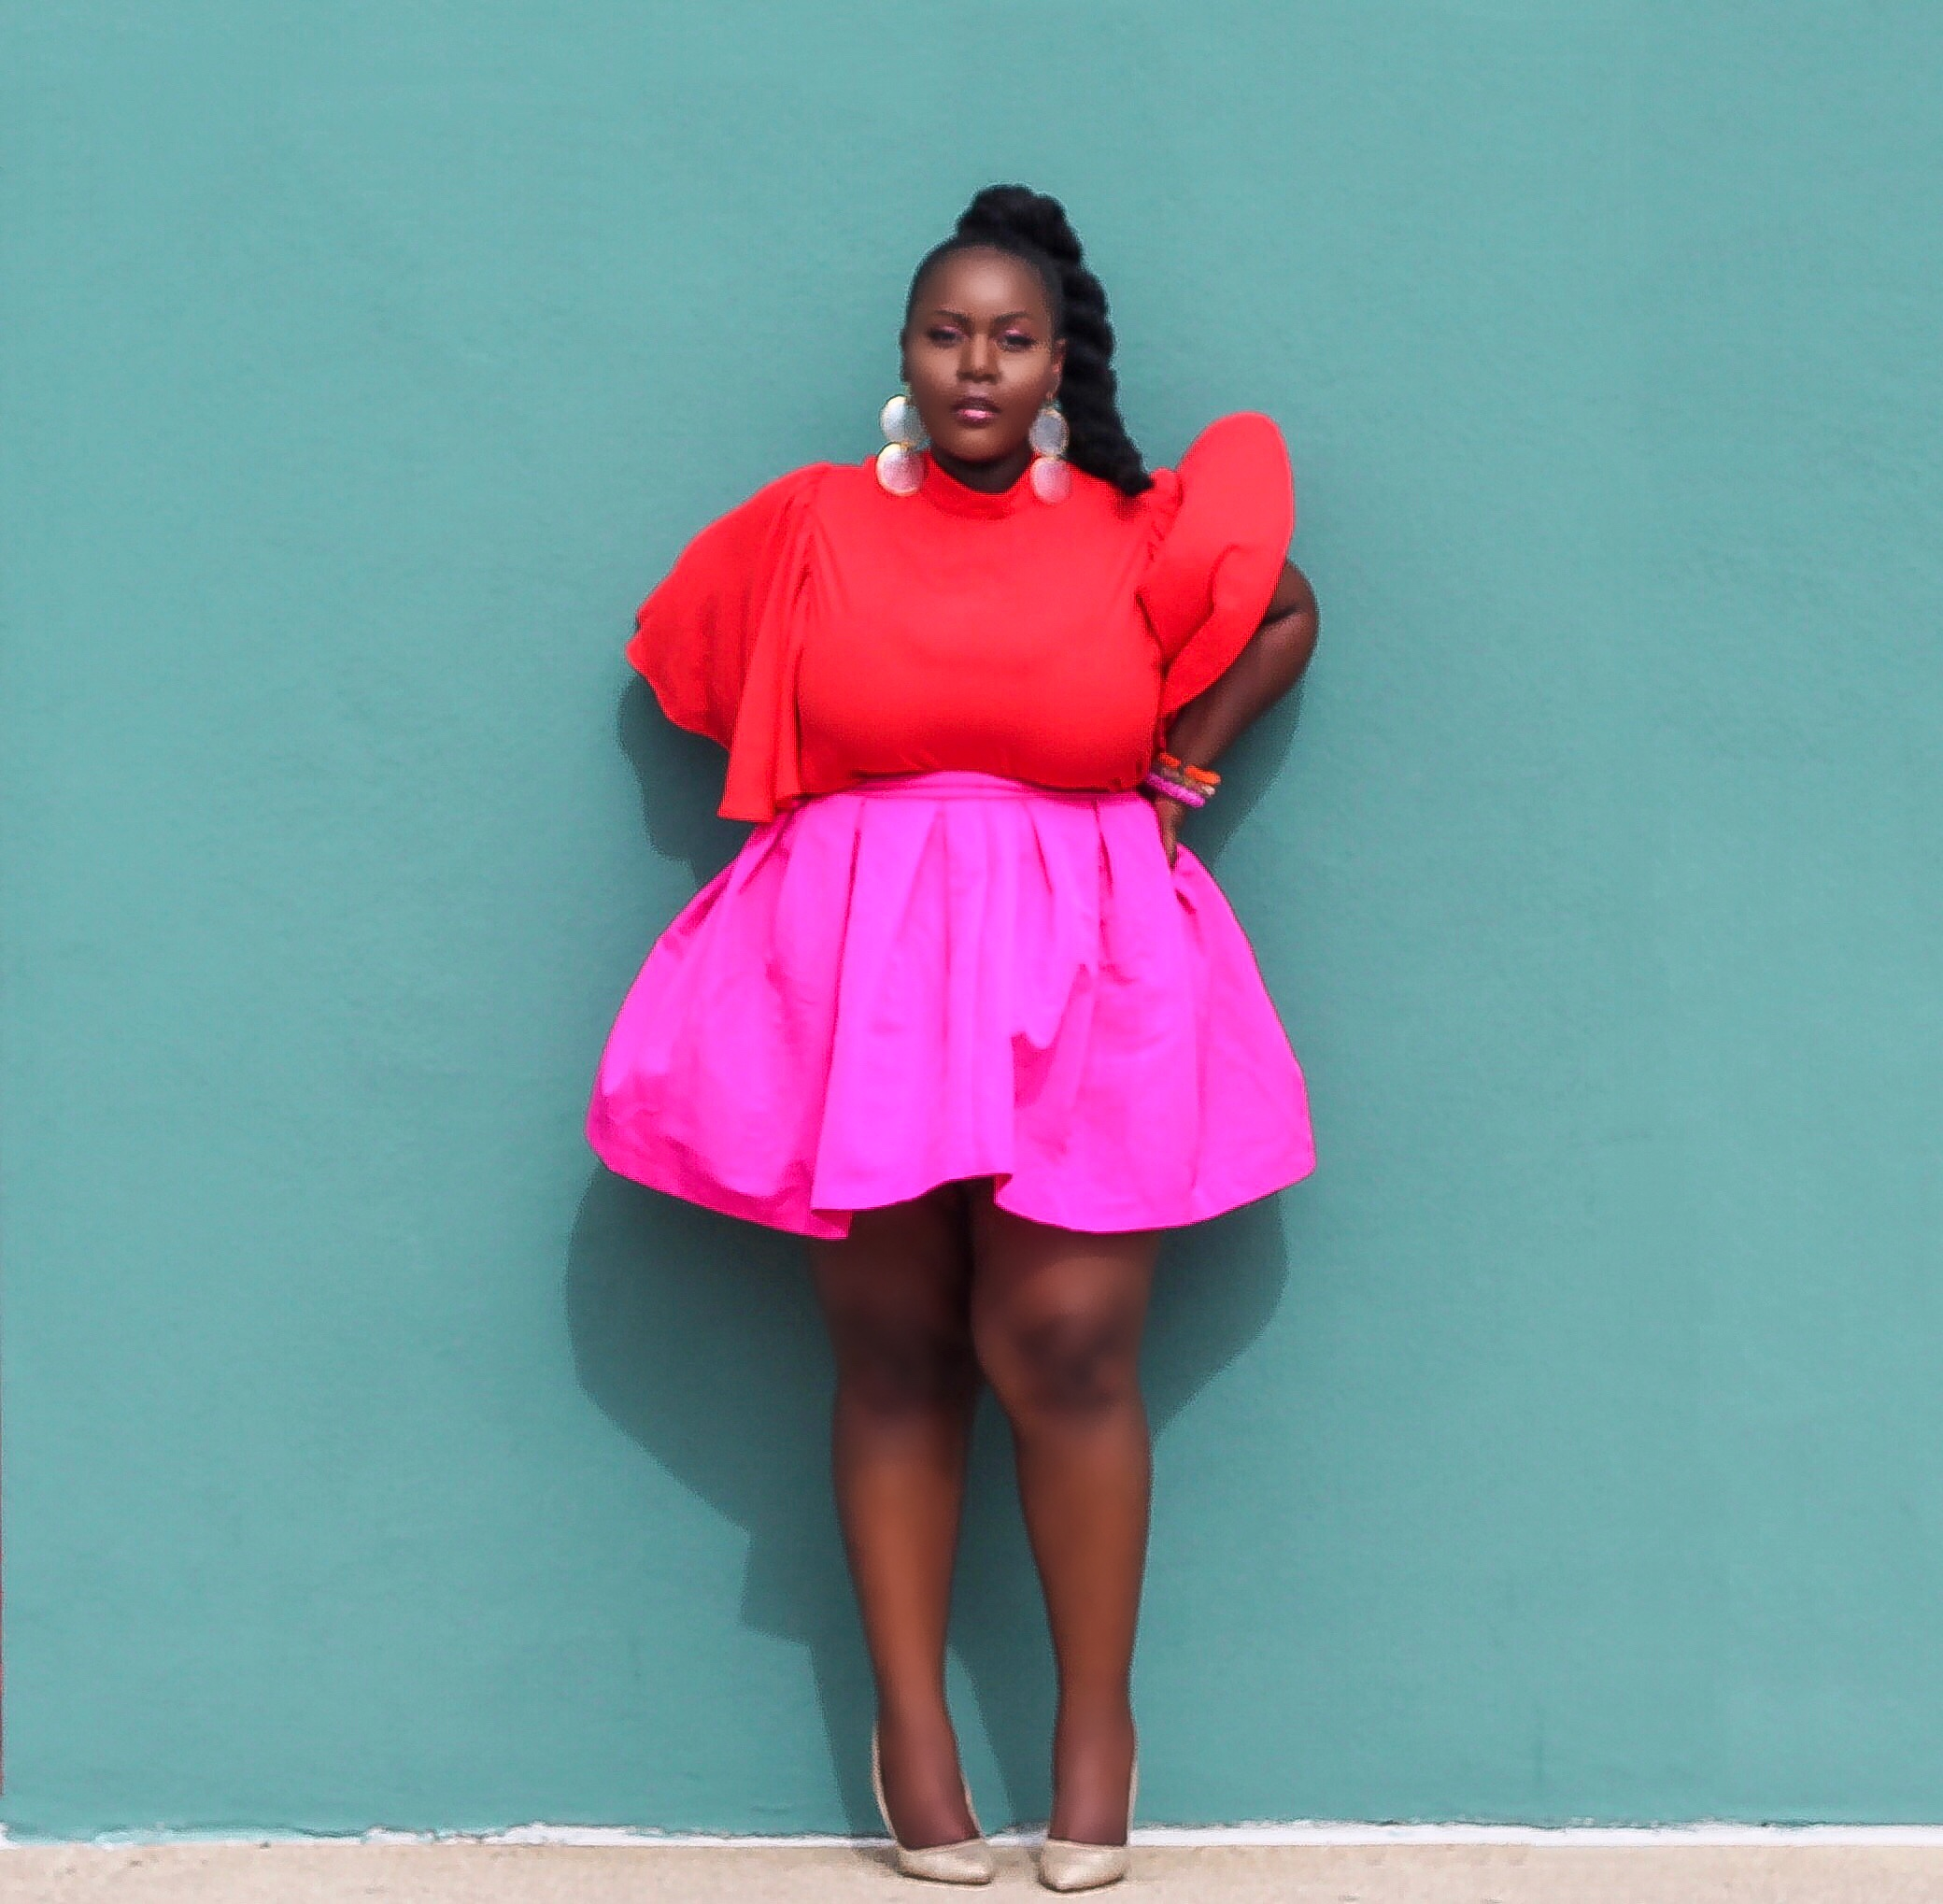 plus size fashion blogs 2017, beautiful curvy girls, how to fill the eye brow of a dark skin, beautiful plus size dark skin girls, plus size black bloggers, clothes for curvy girls, curvy girl fashion clothing, plus blog, plus size fashion tips, plus size women blog, curvy women fashion, plus blog, curvy girl fashion blog, style plus curves, plus size fashion instagram, curvy girl blog, bbw blog, plus size street fashion, plus size beauty blog, plus size fashion ideas, curvy girl summer outfits, plus size fashion magazine, plus fashion bloggers, zara, Rosie the riveter shirt; Emilia embroidered beaded clutch; Vince Camuto heels; Lula shell drop earrings; Aldo Galigossi sunnies